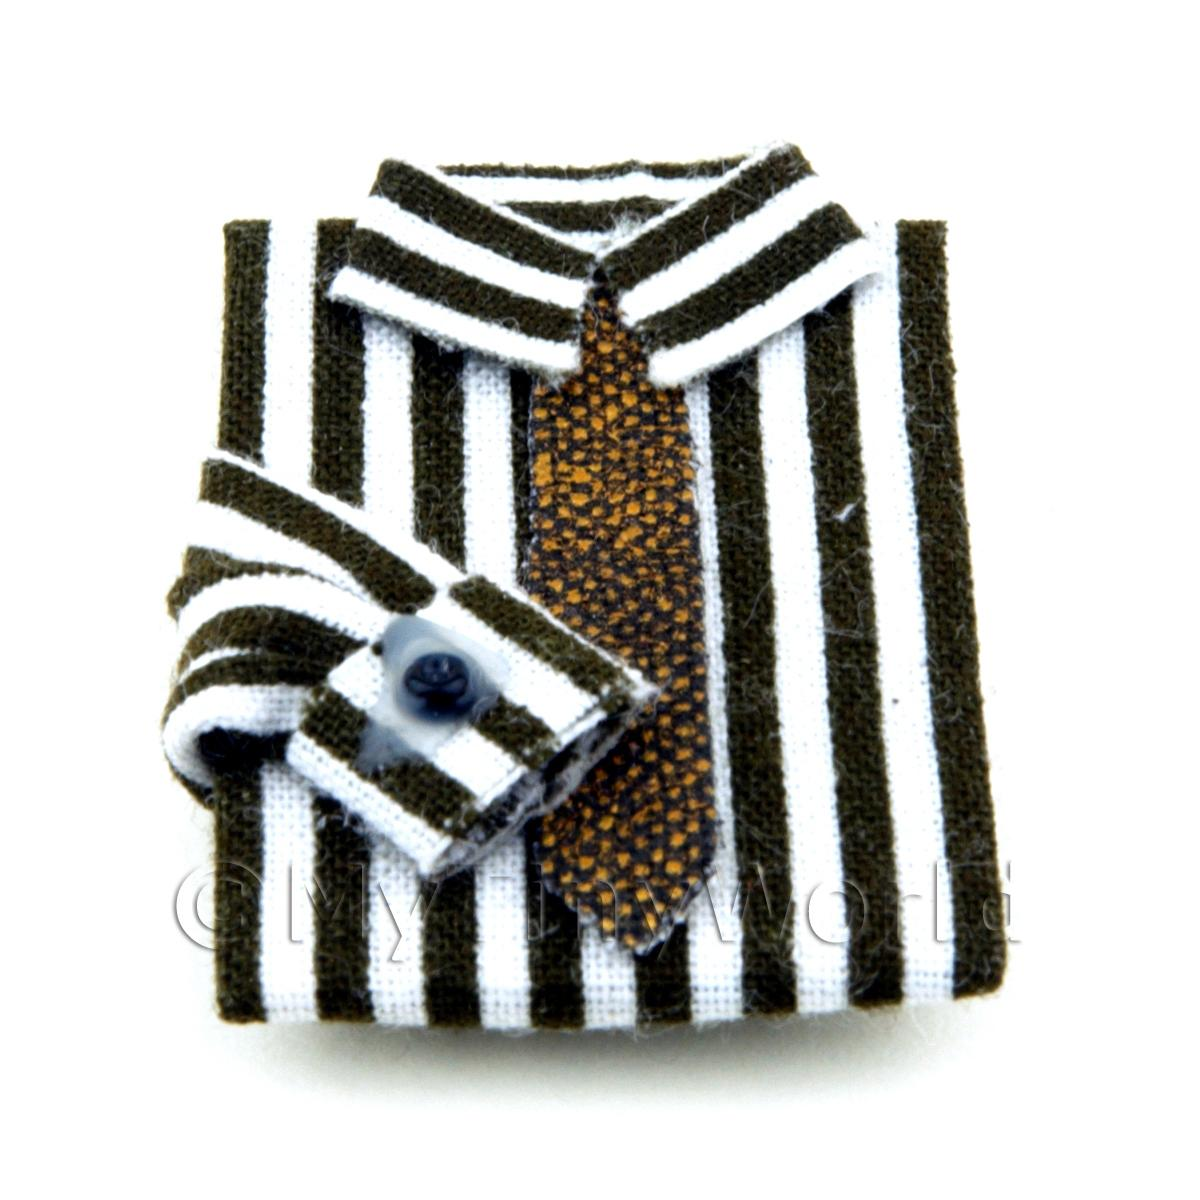 Dolls House Miniature Black and White Striped Shirt and Tie